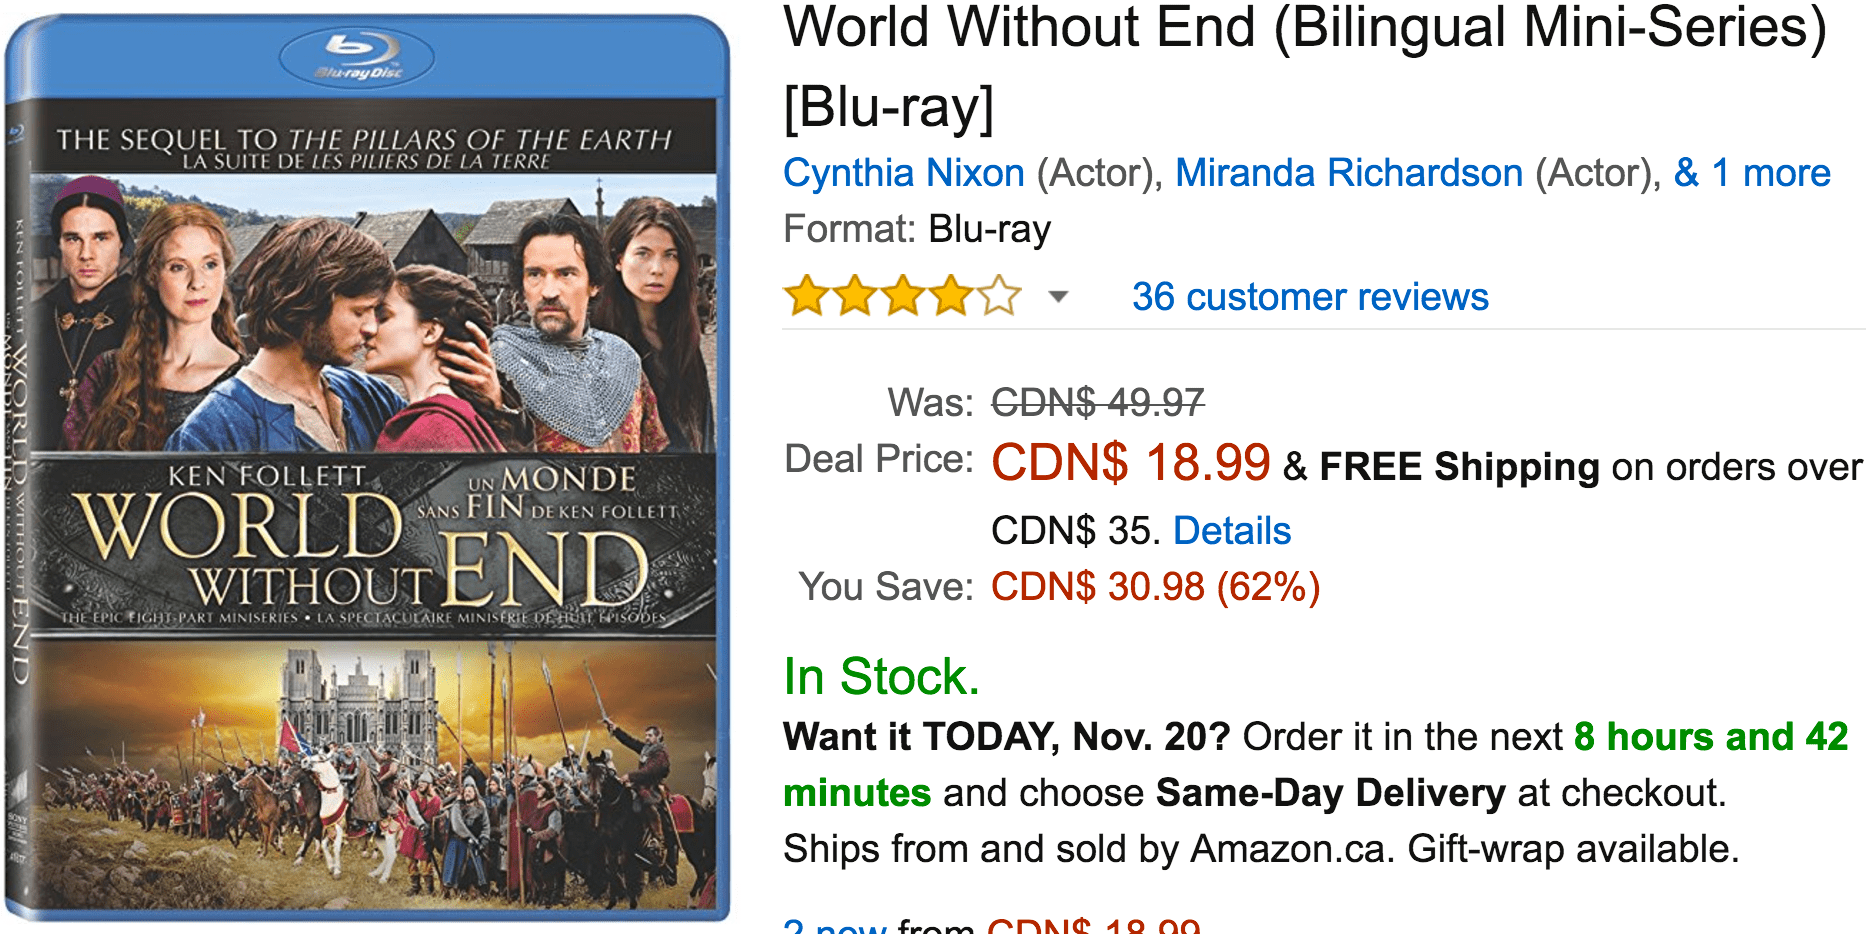 Amazon Canada Black Friday Deals: Save 62% on World Without End, 55% on The Pillars of the Earth, 30% on Select Hoverboards, Scooters and Skateboards & More Offers